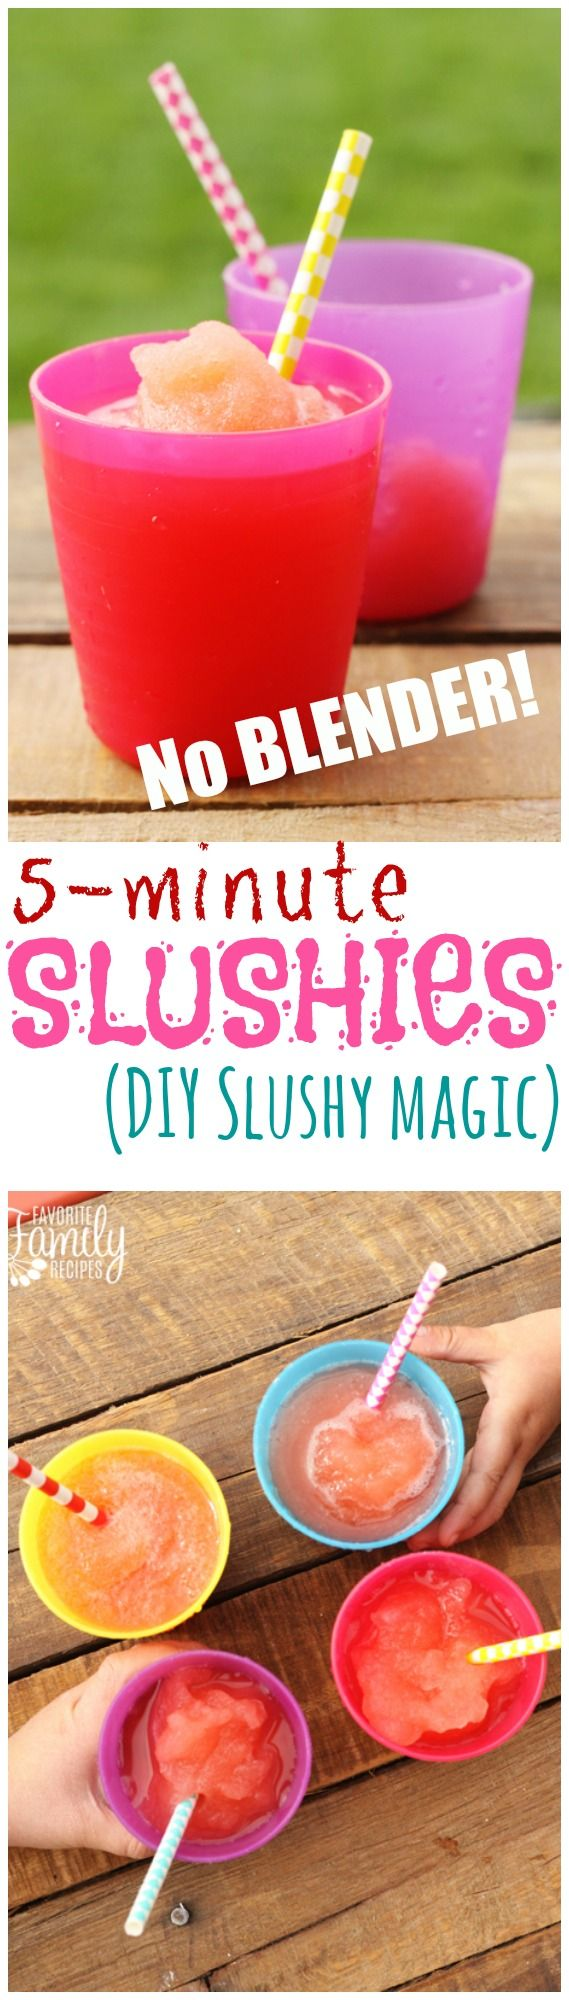 These slushys REALLY DO only take 5 MINUTES! My kids had a blast making them -- my 3-year-old can do it! They really are magic! Coolest. Slushies. Ever.